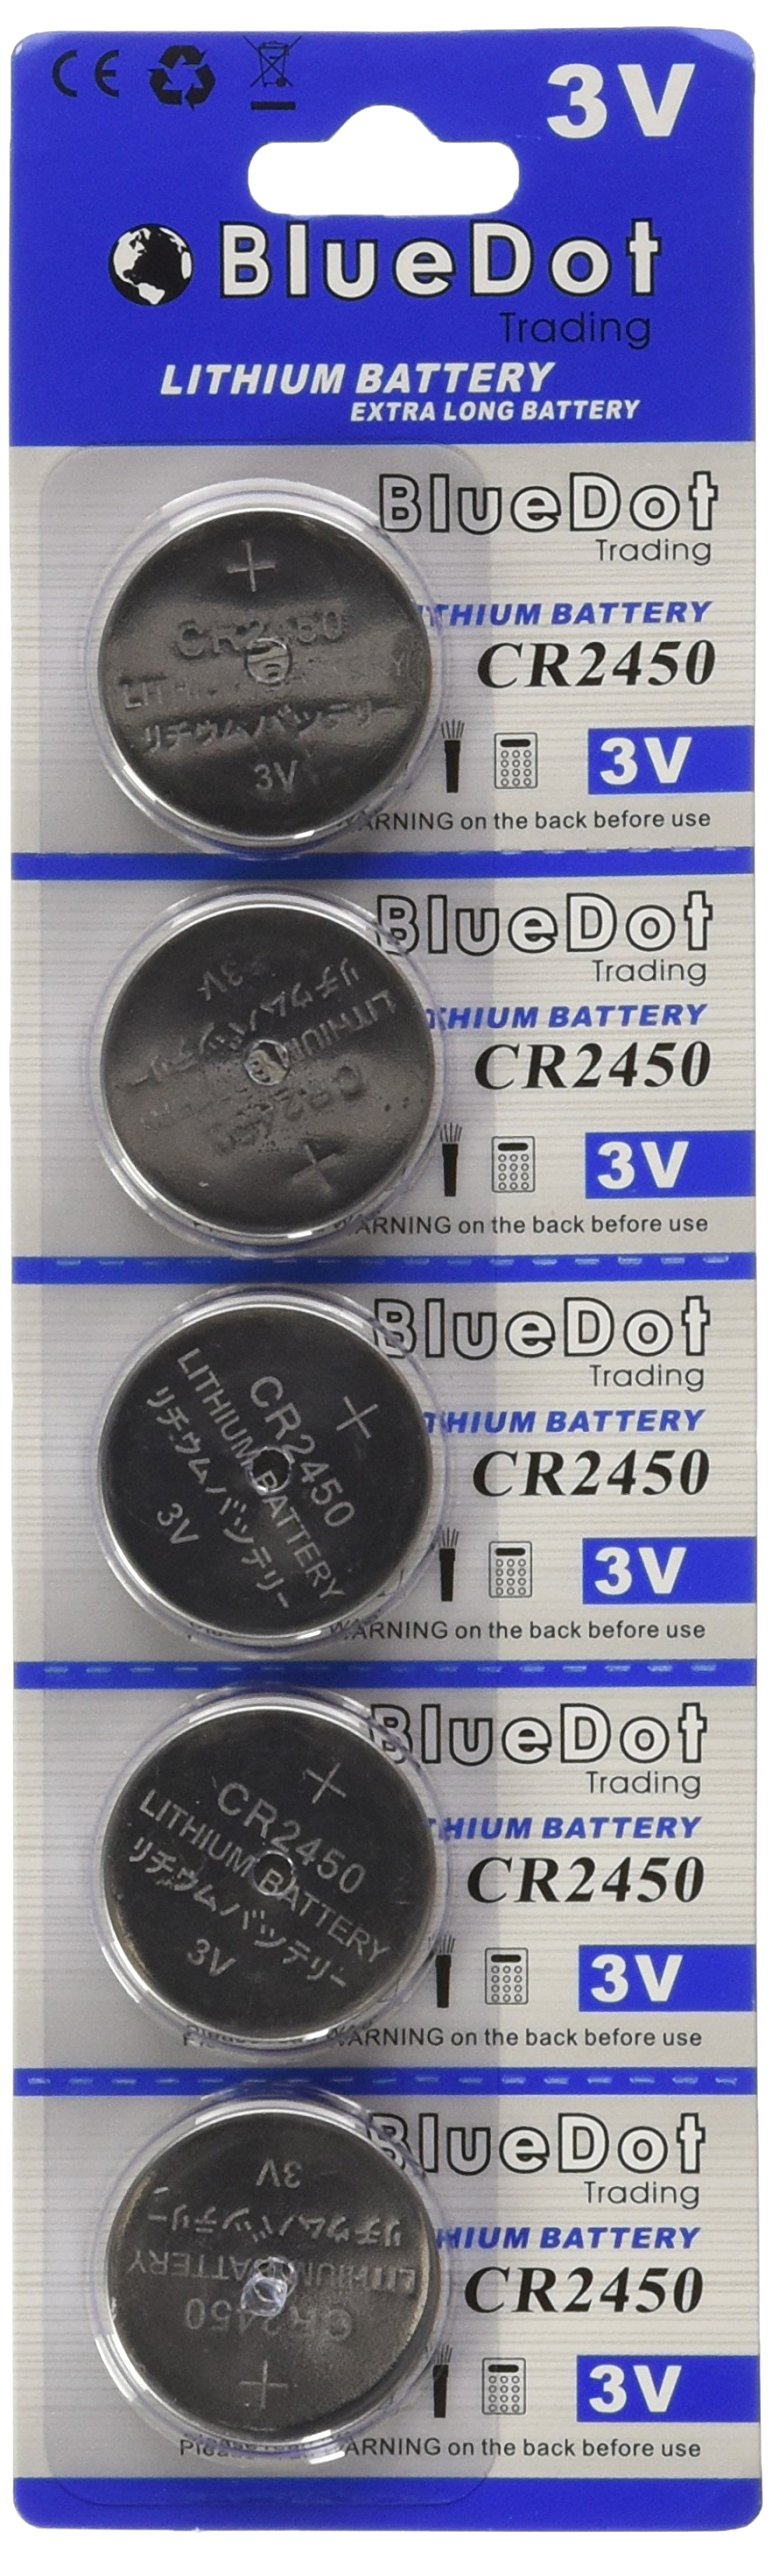 BlueDot Trading CR2450 Lithium Cell Battery, 25 Count